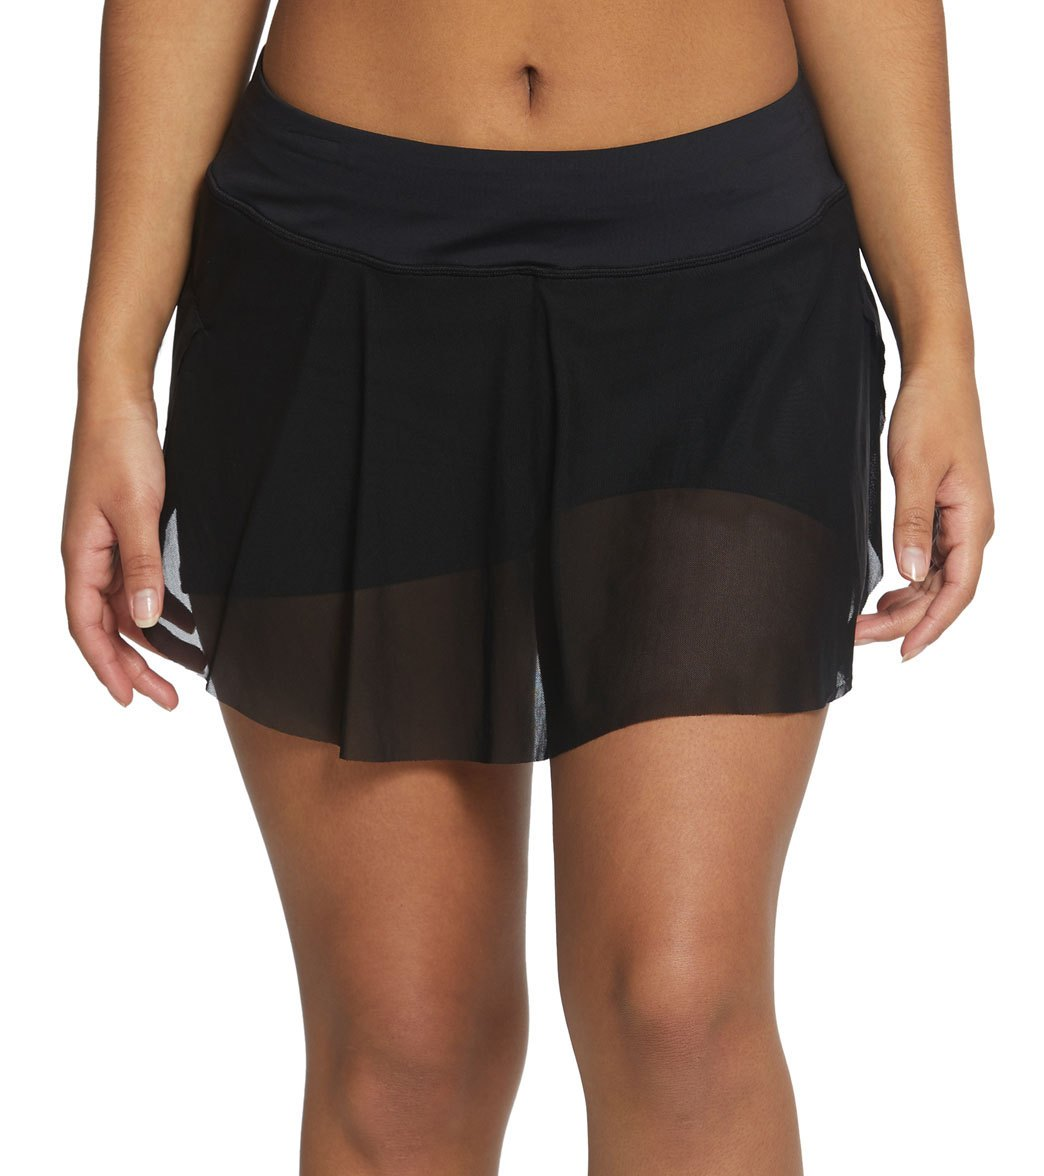 daa704af708 Coco Reef Classic Solid Charisma Swim Skort at SwimOutlet.com - Free  Shipping